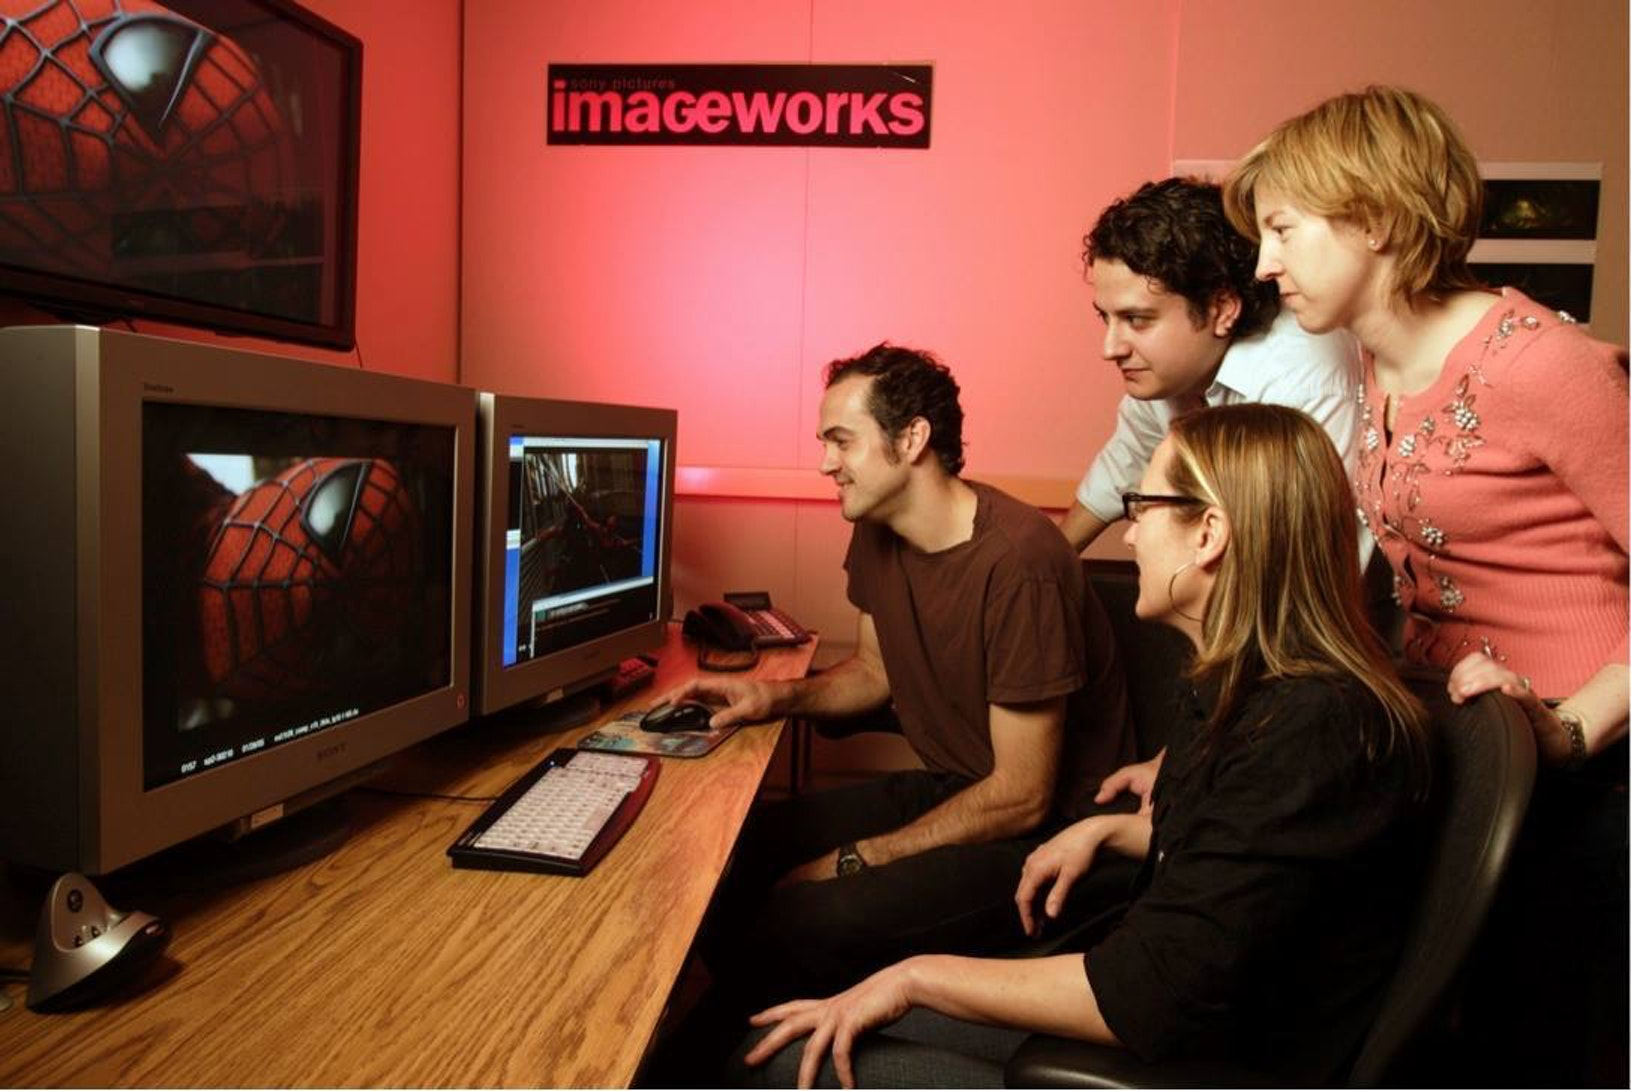 The team from visual effects studio Imageworks, including Scott Stokdyk (left) review a shot from Spider-Man 2.